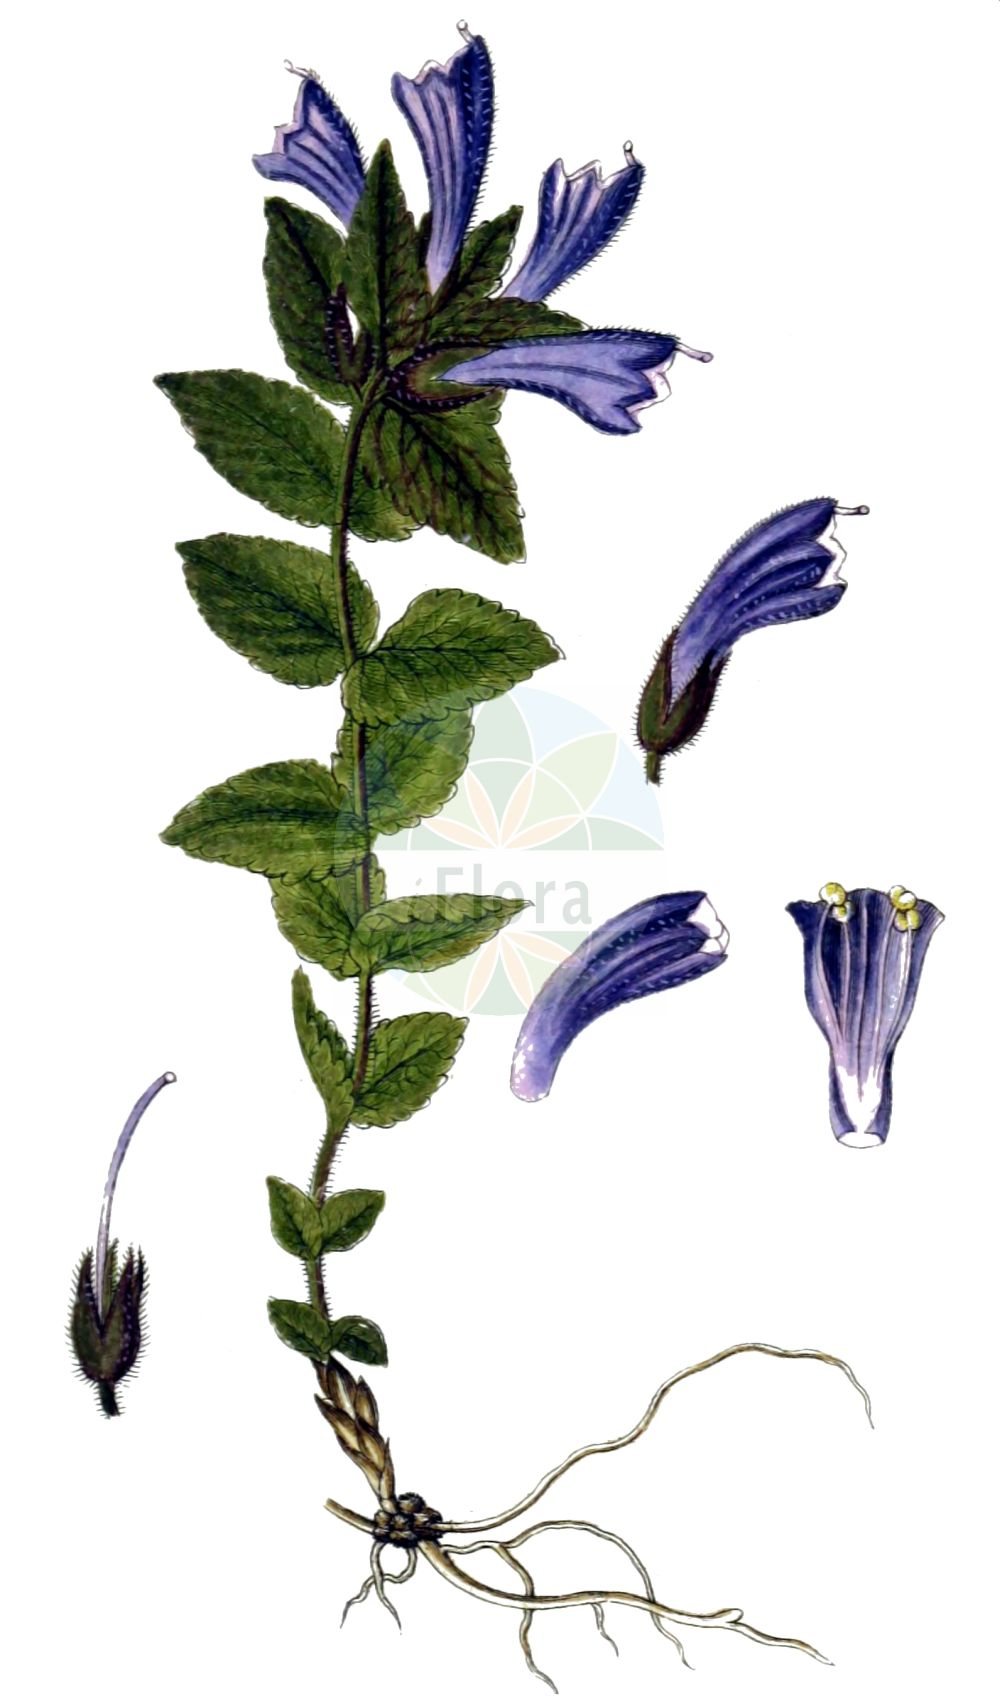 Historische Abbildung von Bartsia alpina (Alpenhelm - Alpine Bartsia). Das Bild zeigt Blatt, Bluete, Frucht und Same. ---- Historical Drawing of Bartsia alpina (Alpenhelm - Alpine Bartsia).The image is showing leaf, flower, fruit and seed.(Bartsia alpina,Alpenhelm,Alpine Bartsia,Bartsia alpina,Alpenhelm,Alpen-Bartschie,Europaeischer Alpenhelm,Trauerblume,Alpine Bartsia,Velvetbells,Bartsia,Bartschie,Velvetbells,Orobanchaceae,Sommerwurzgewaechse,Broomrape family,Blatt,Bluete,Frucht,Same,leaf,flower,fruit,seed,Sturm (1796f))